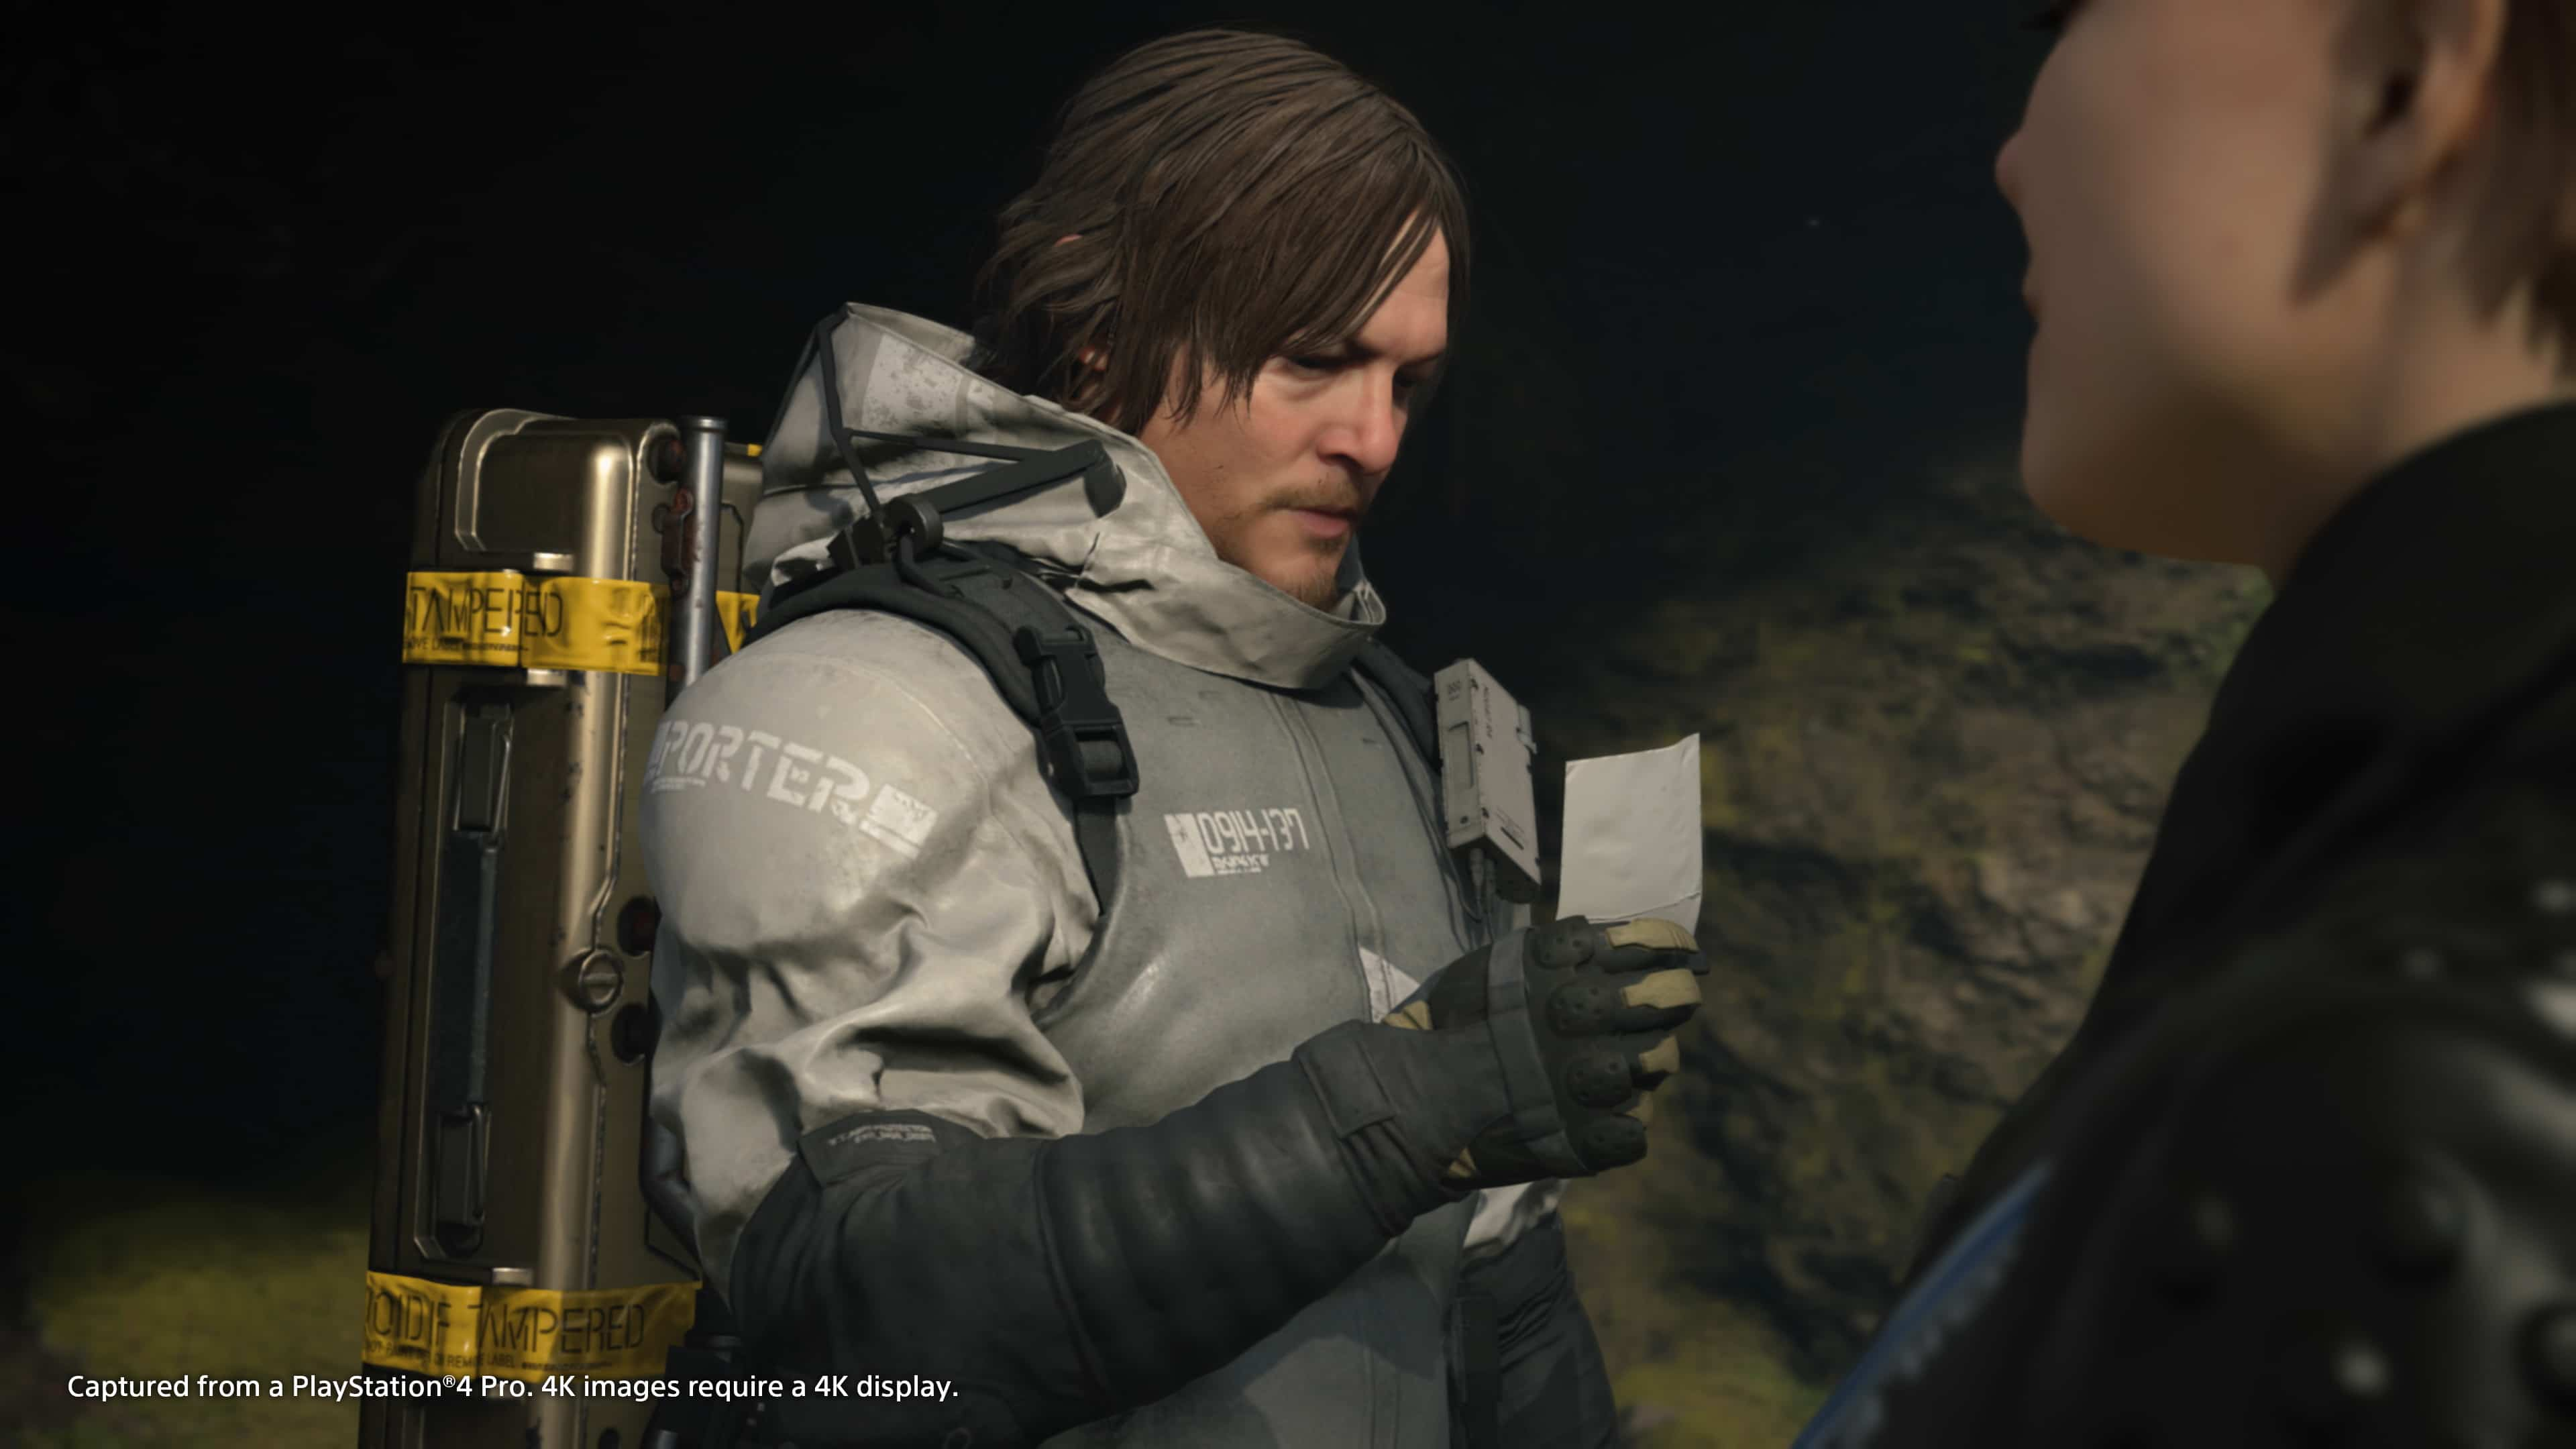 Character's customization can be clearly seen as Death Stranding Cut scenes Happened In real time.